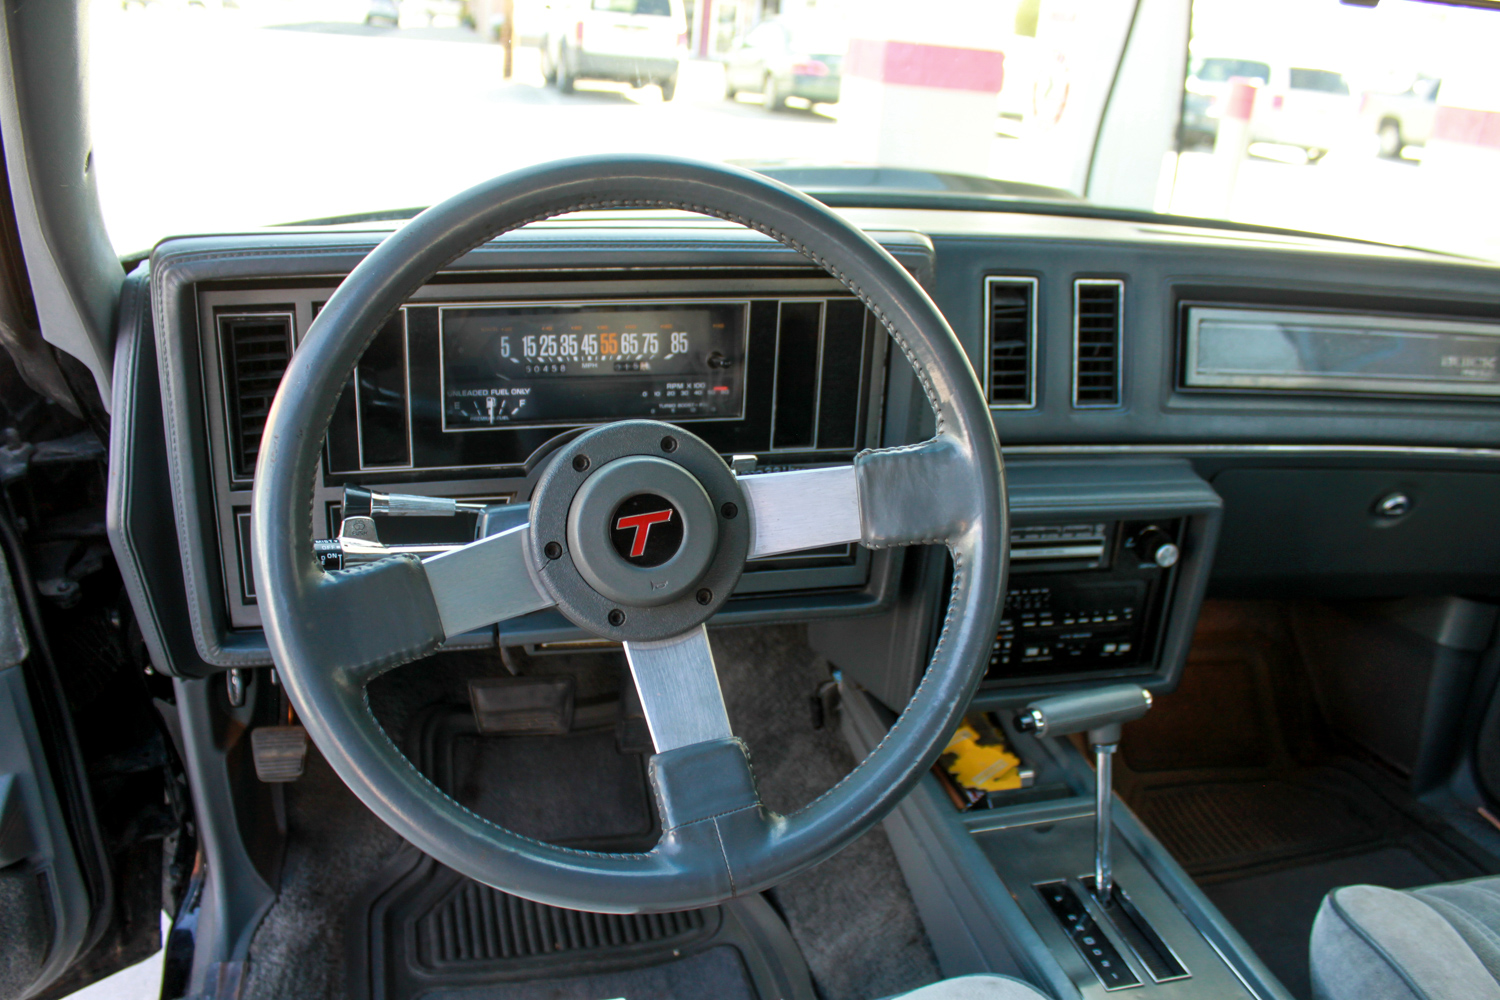 1987 Buick turbo-T steering and dash